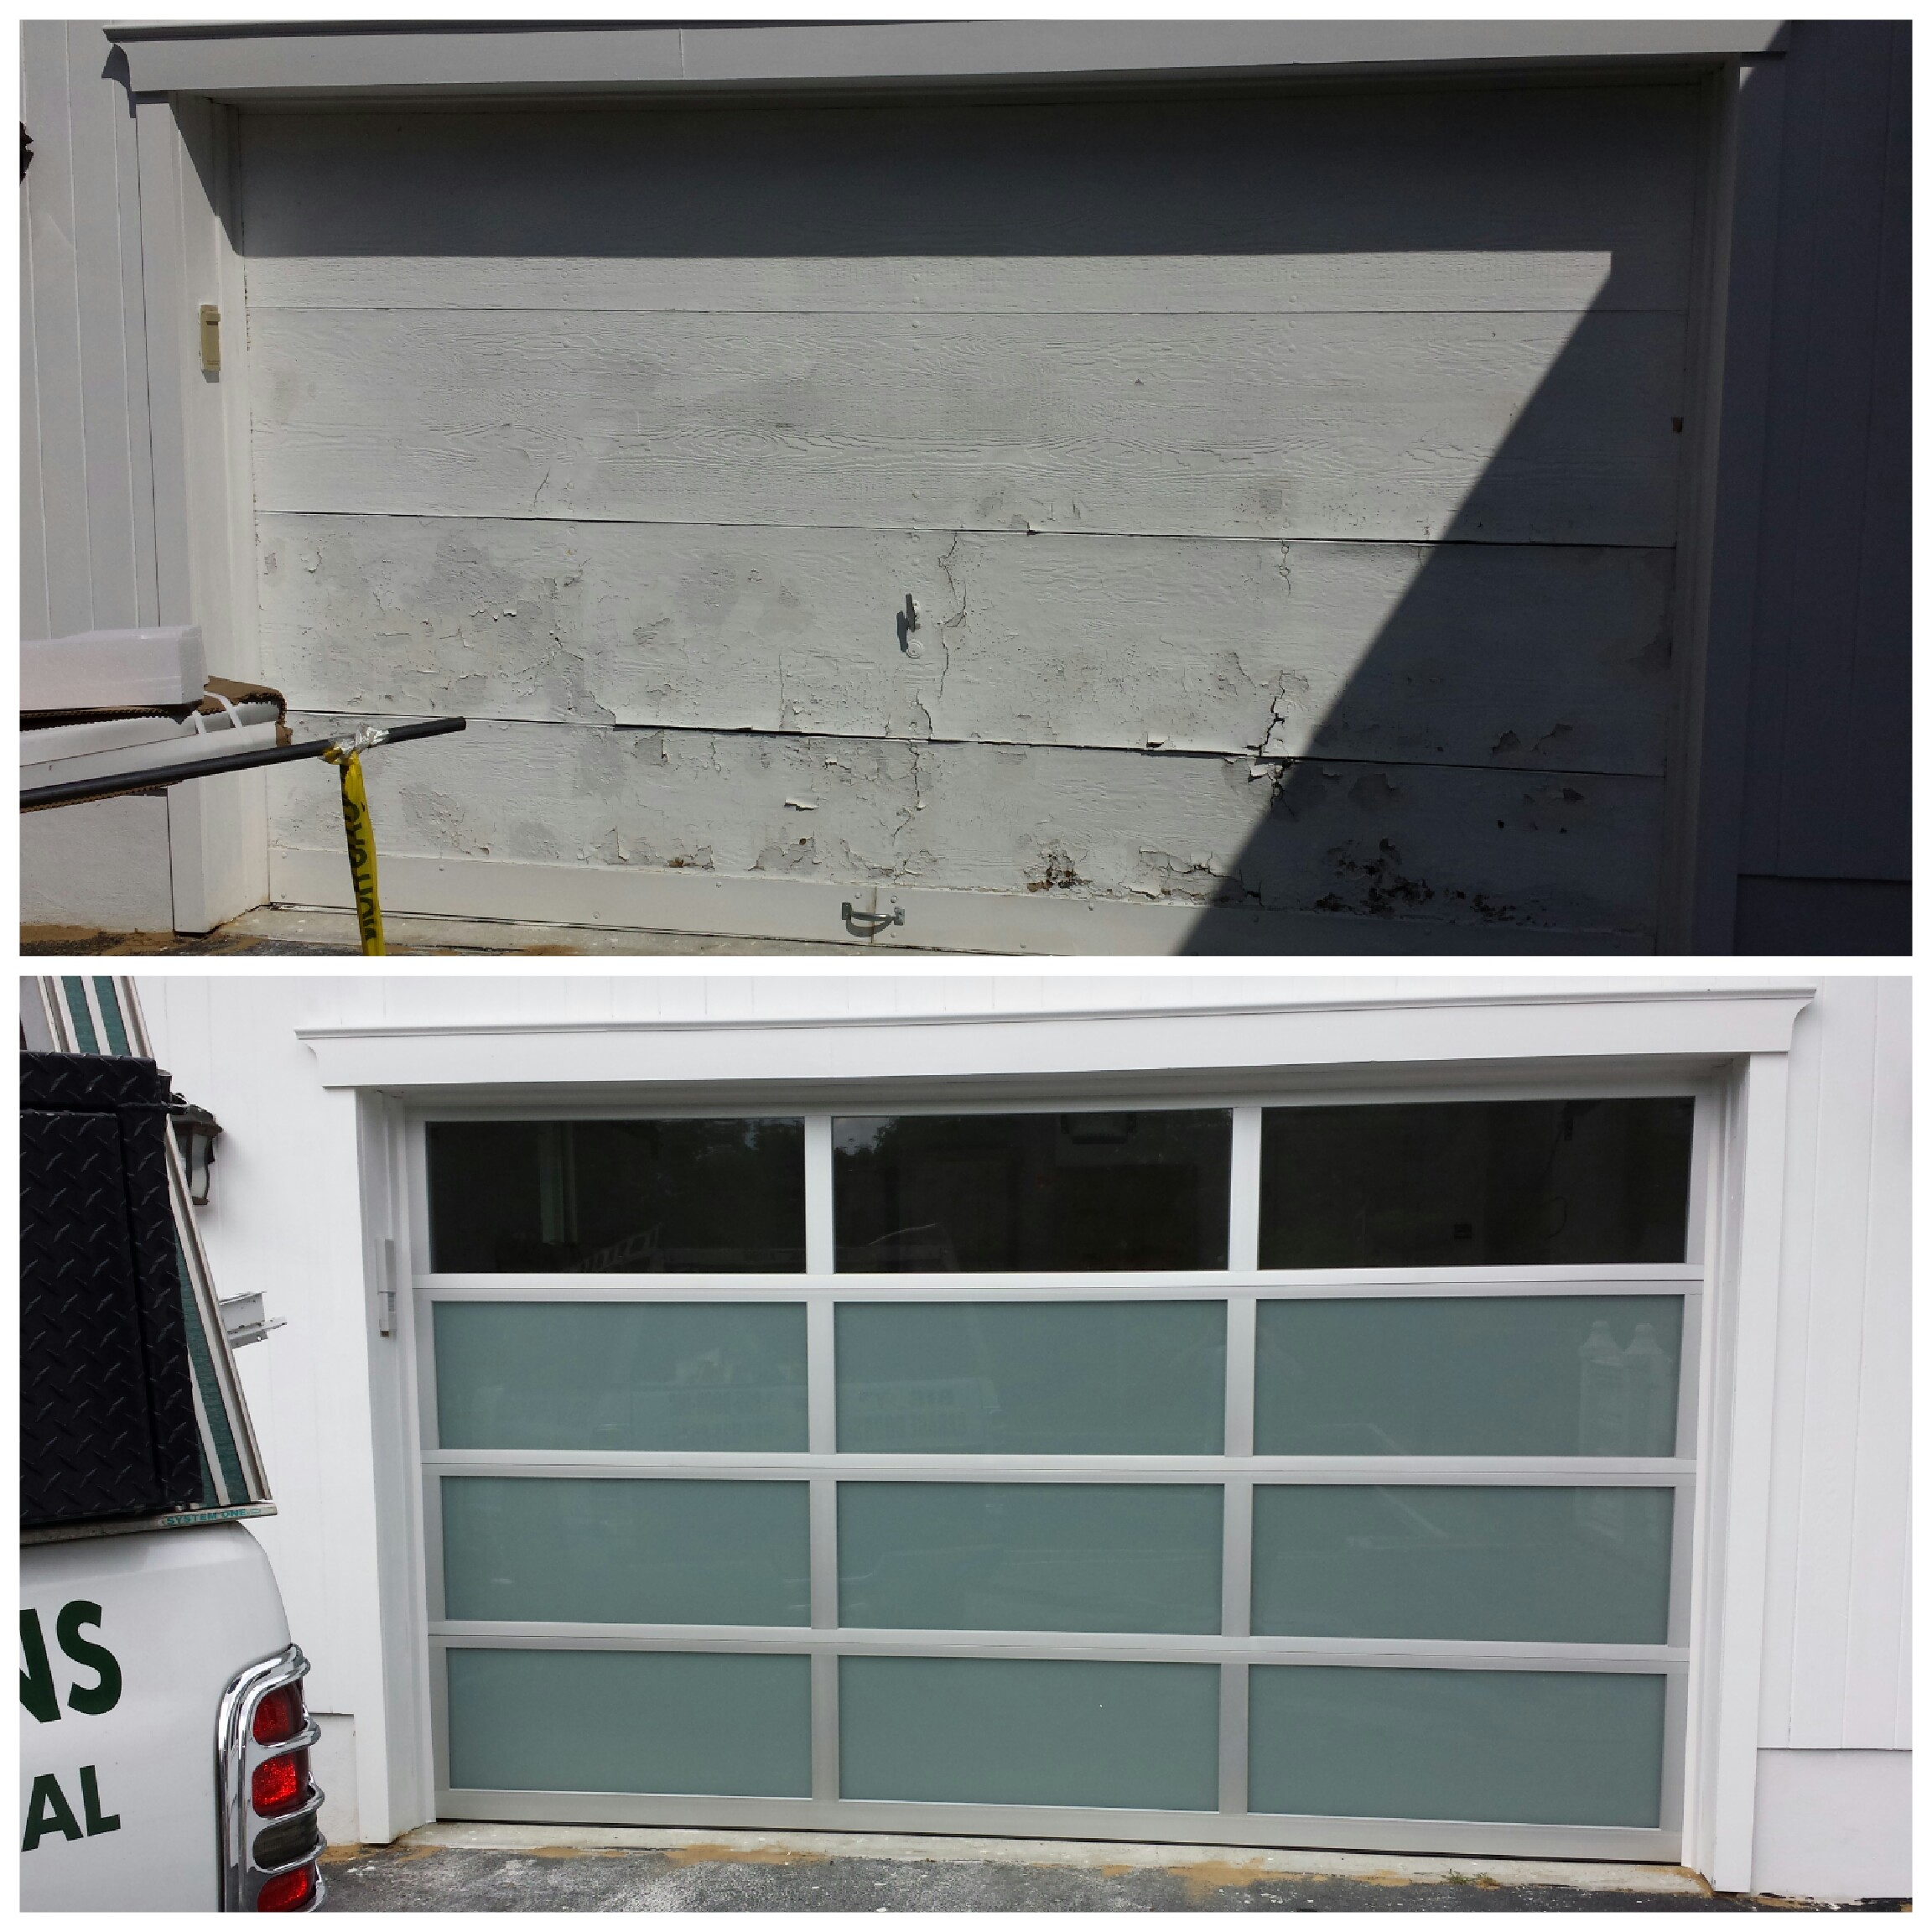 2304 #623F31 Big A's Garage Doors Inc. Coupons Near Me In Manorville 8coupons picture/photo Garage Doors Near Me 37392304